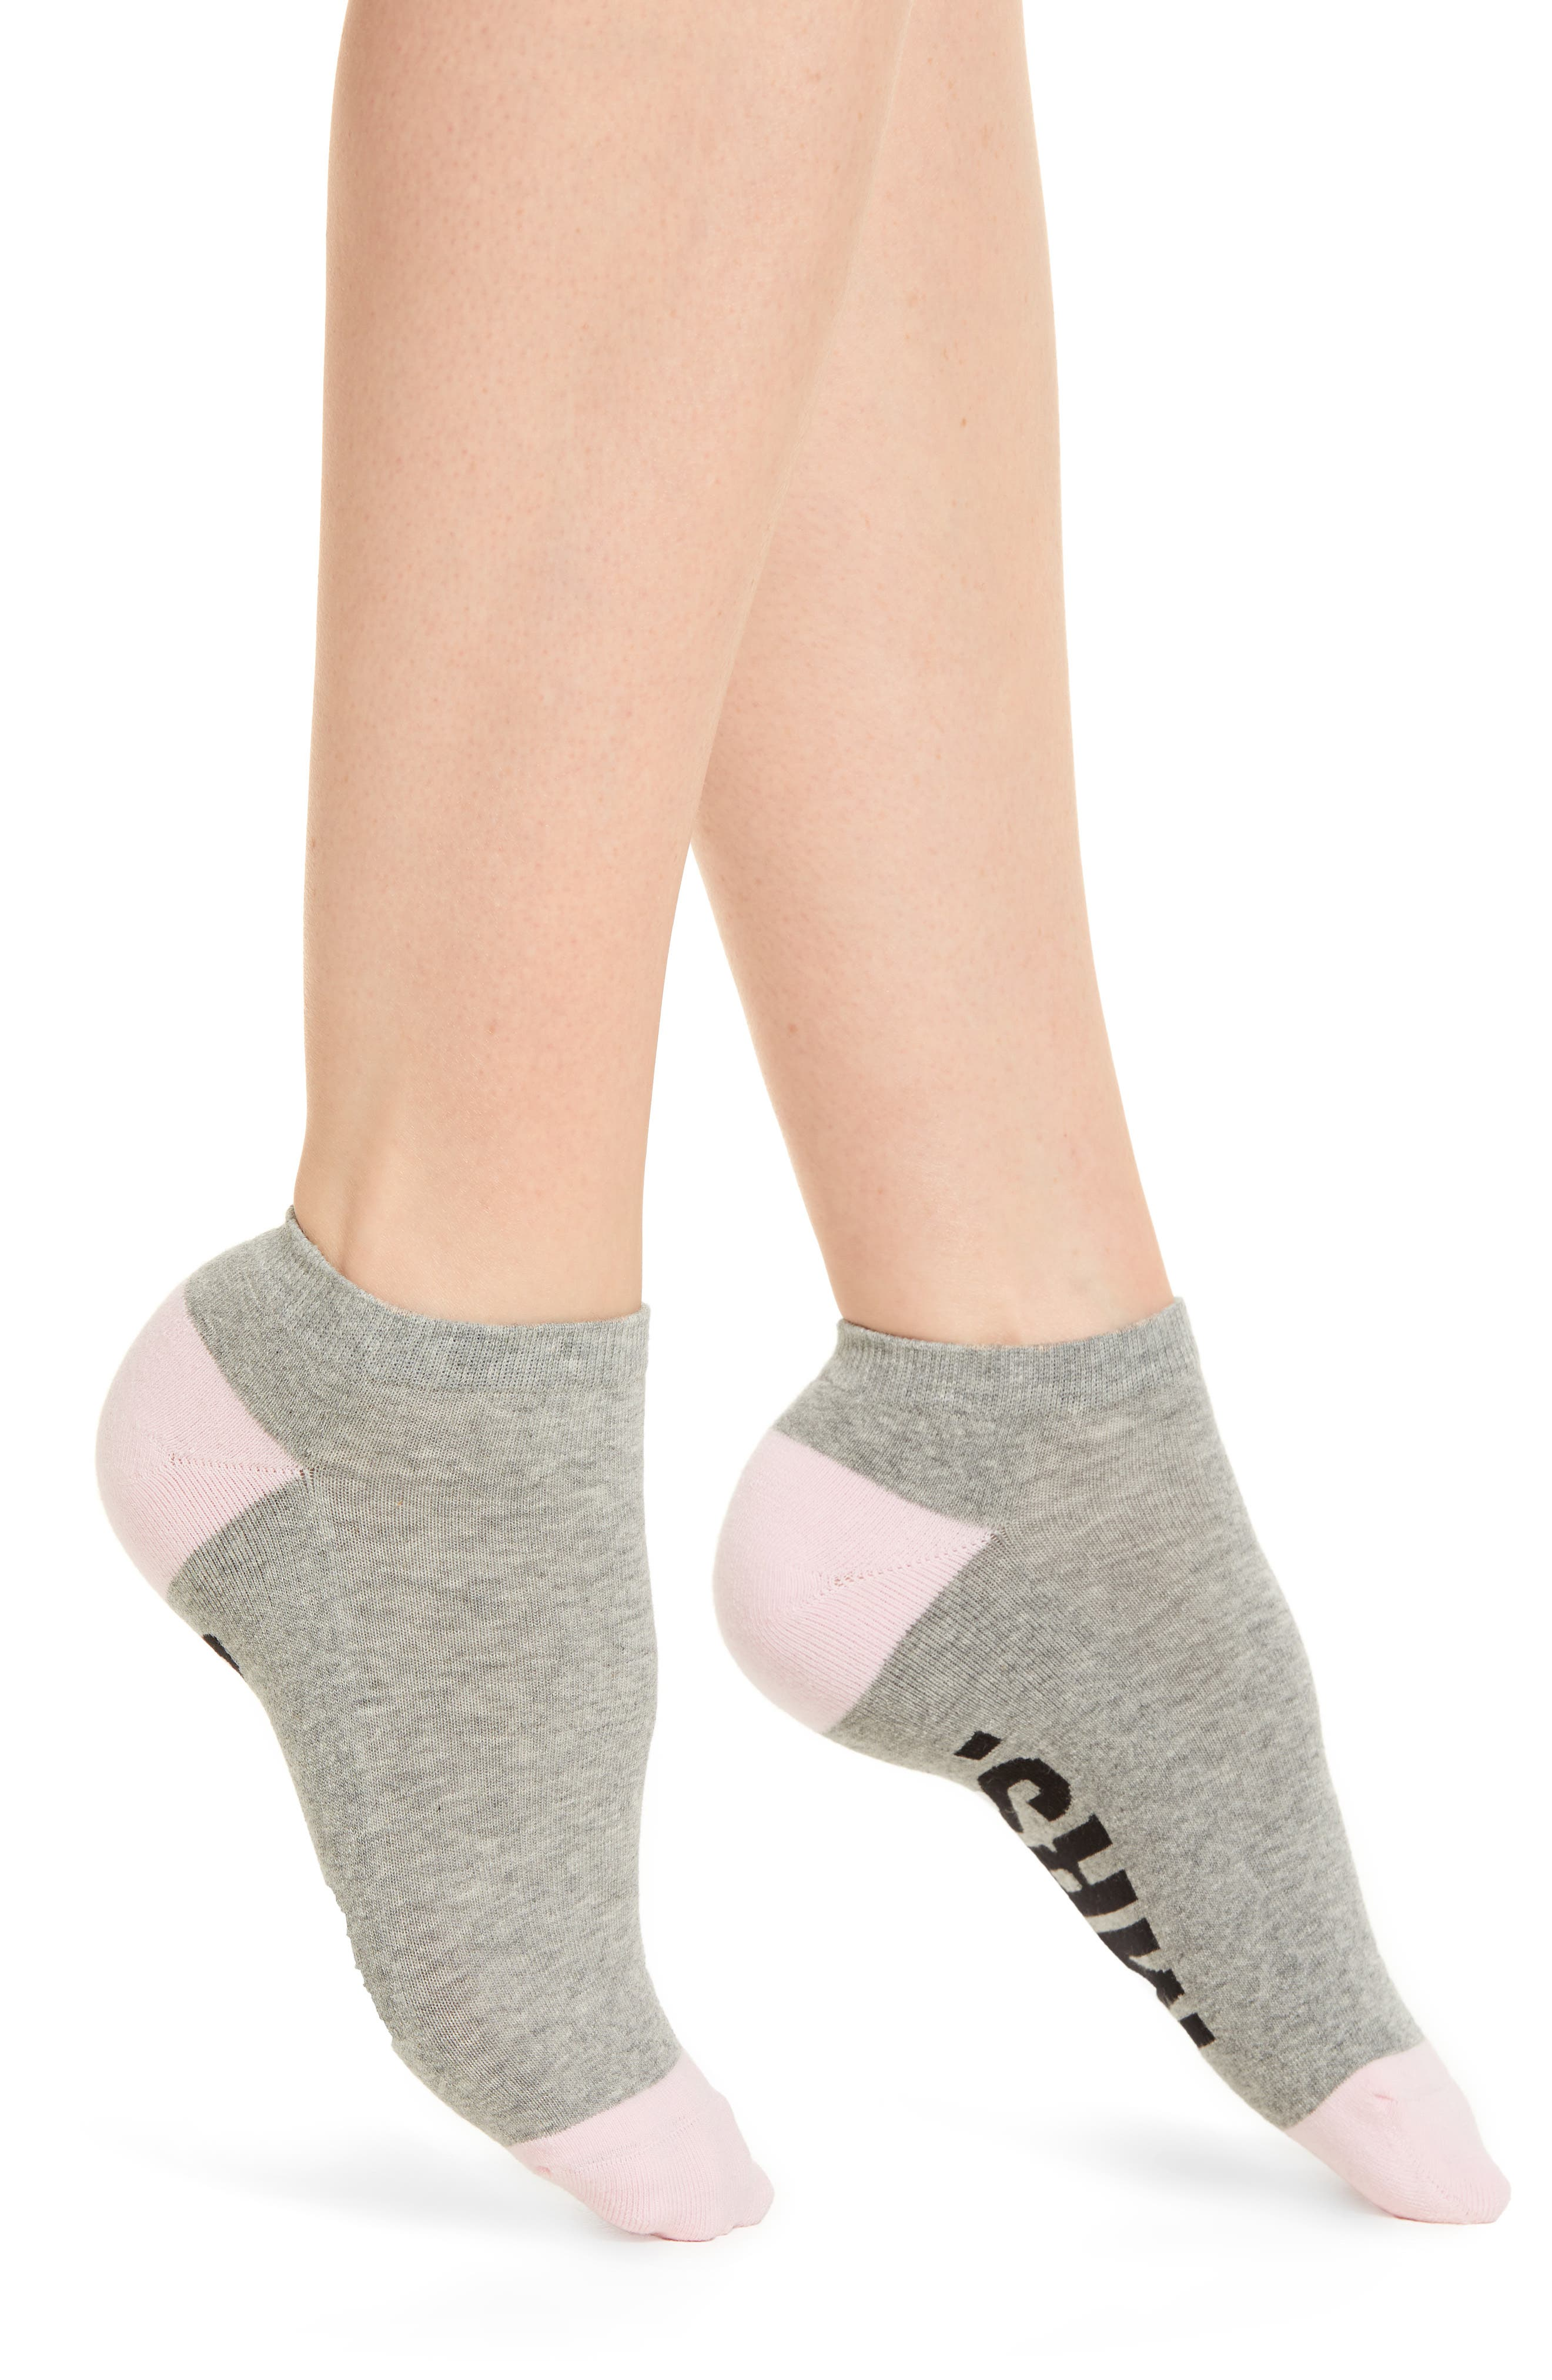 Miss to Mrs. Low-Cut Socks,                             Main thumbnail 1, color,                             Grey Heather